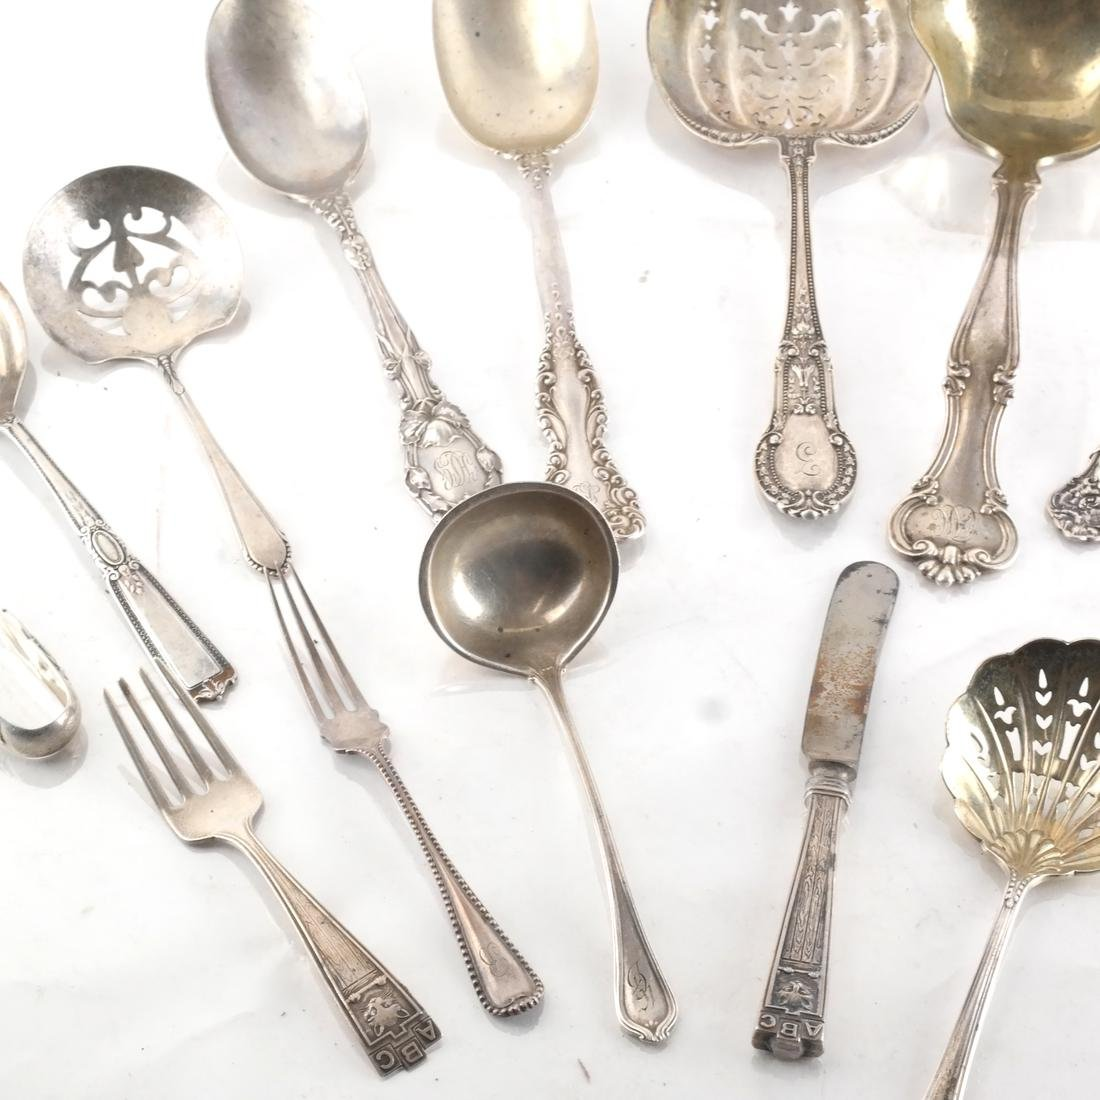 16 Pc. Silver Gorham & Other Tableware - 5